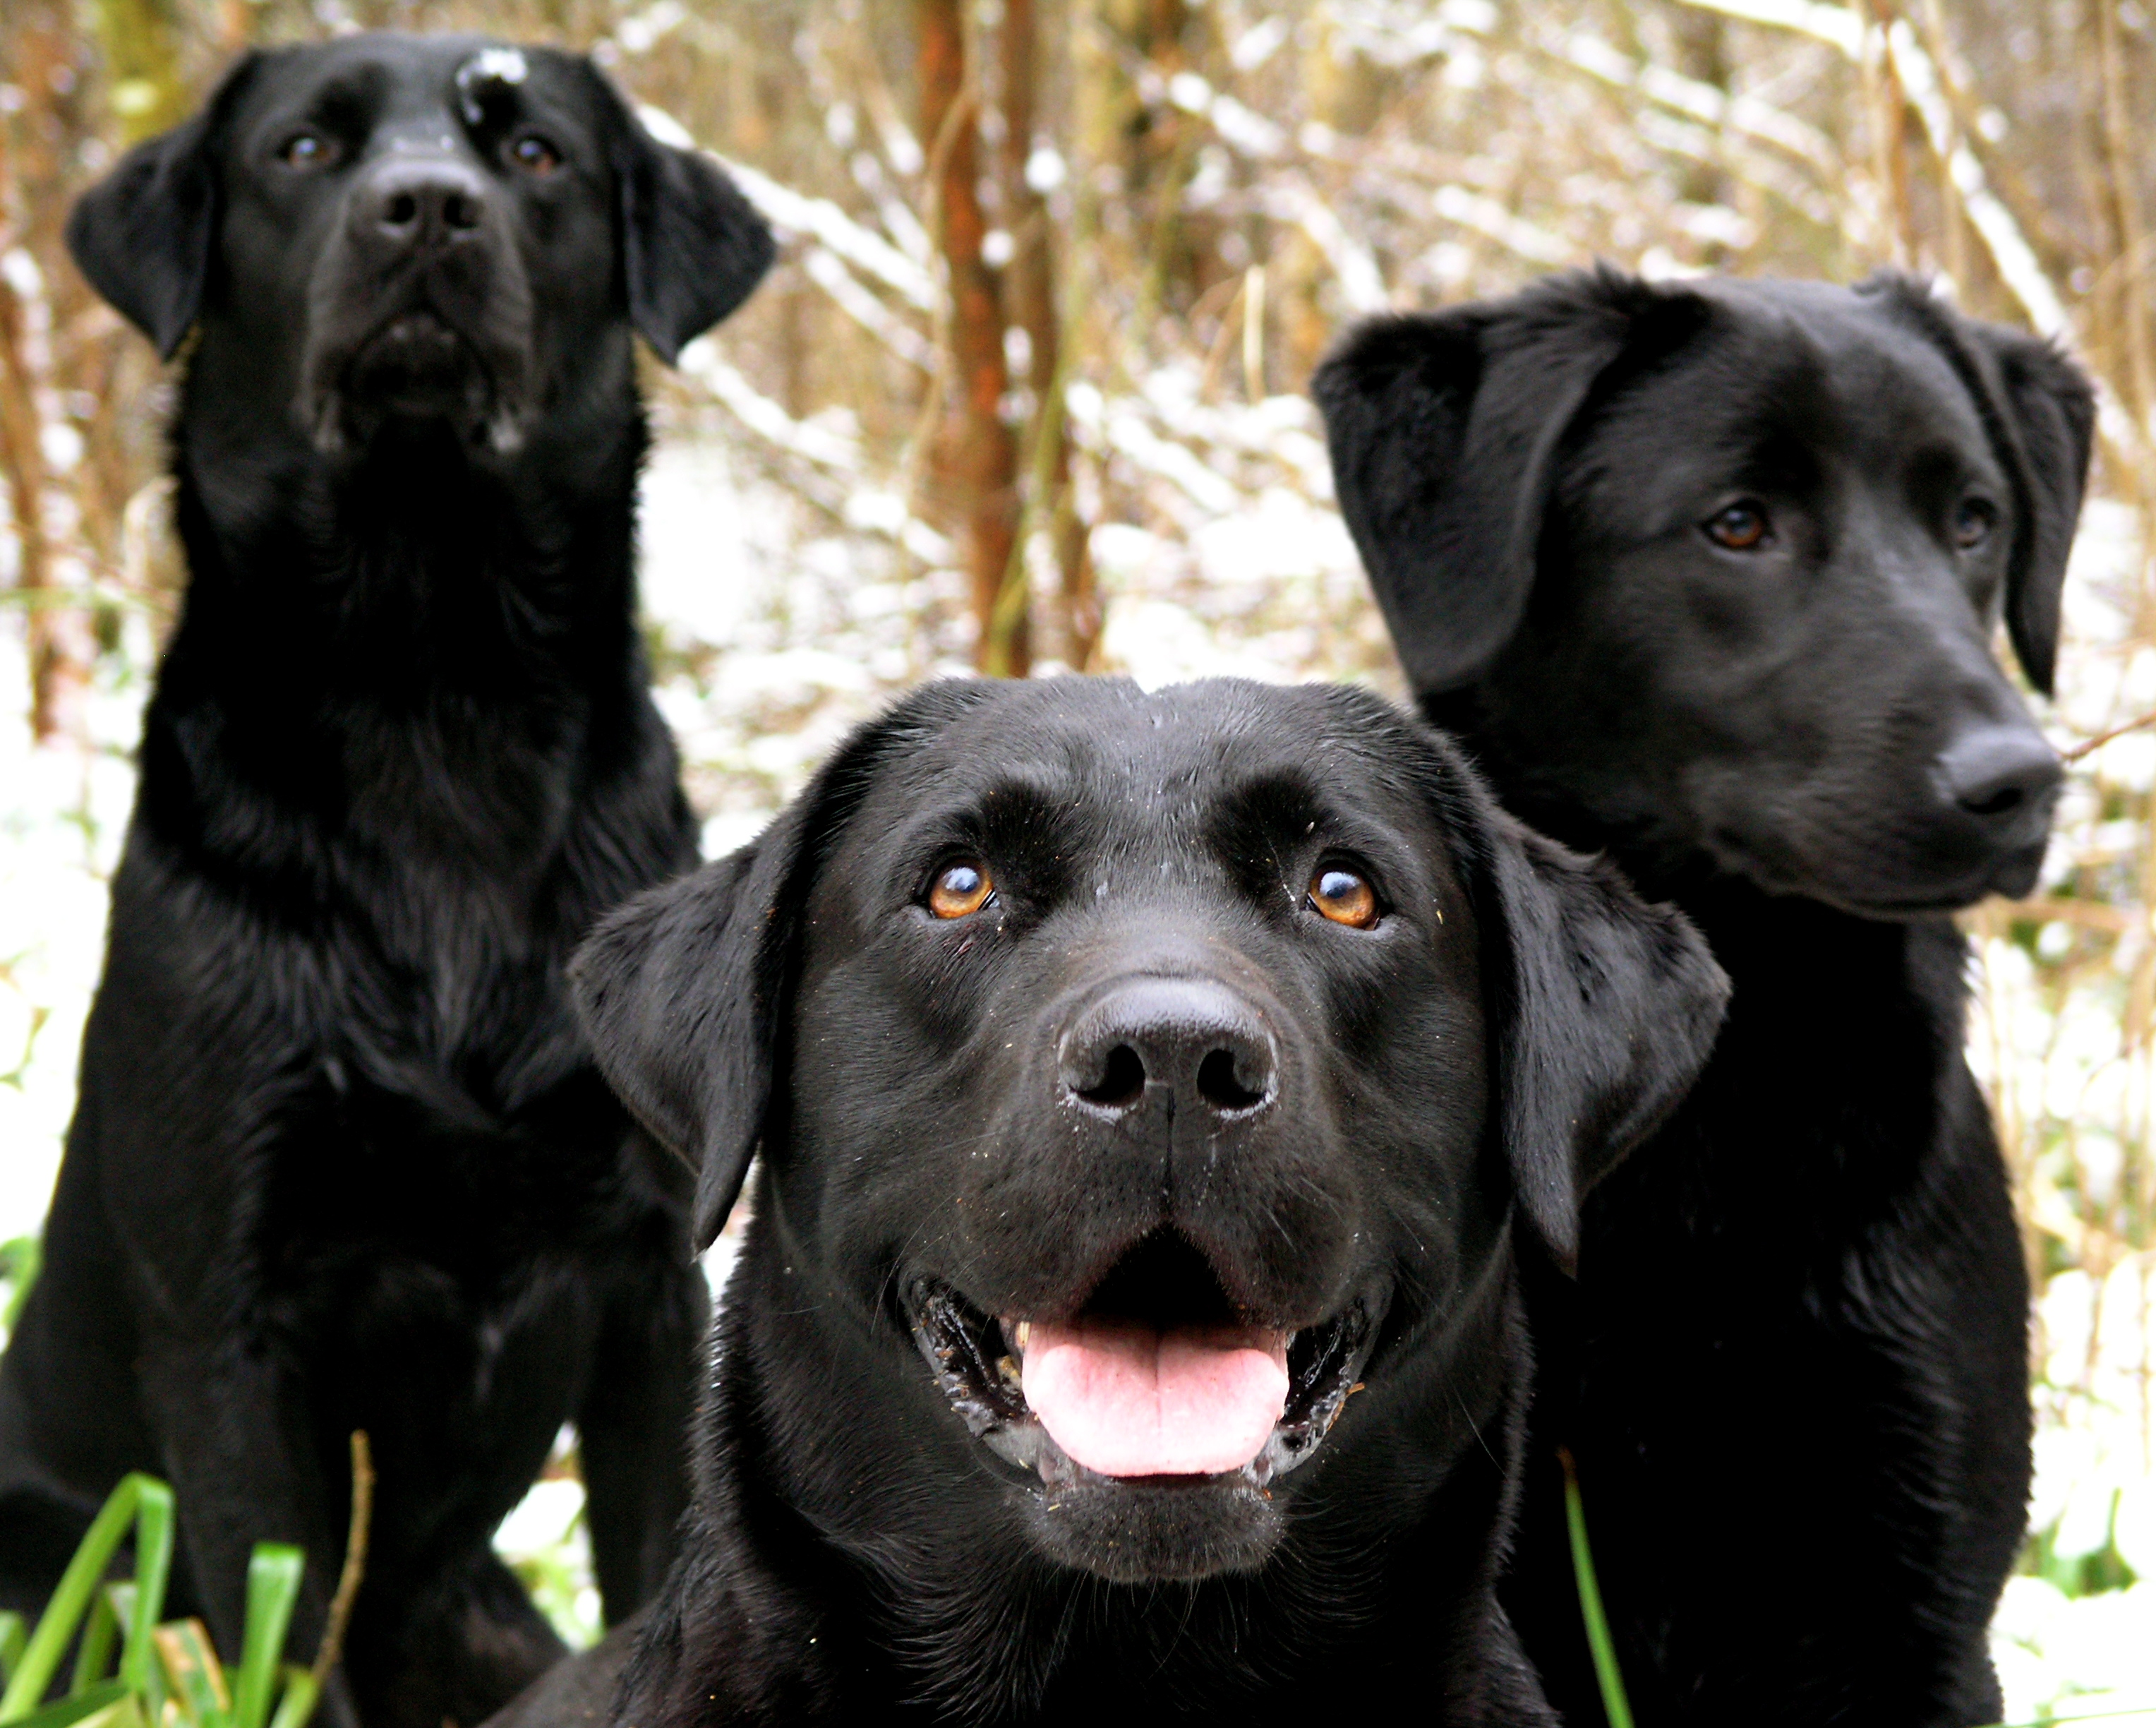 43+] Black Labrador Retriever Wallpaper on WallpaperSafari